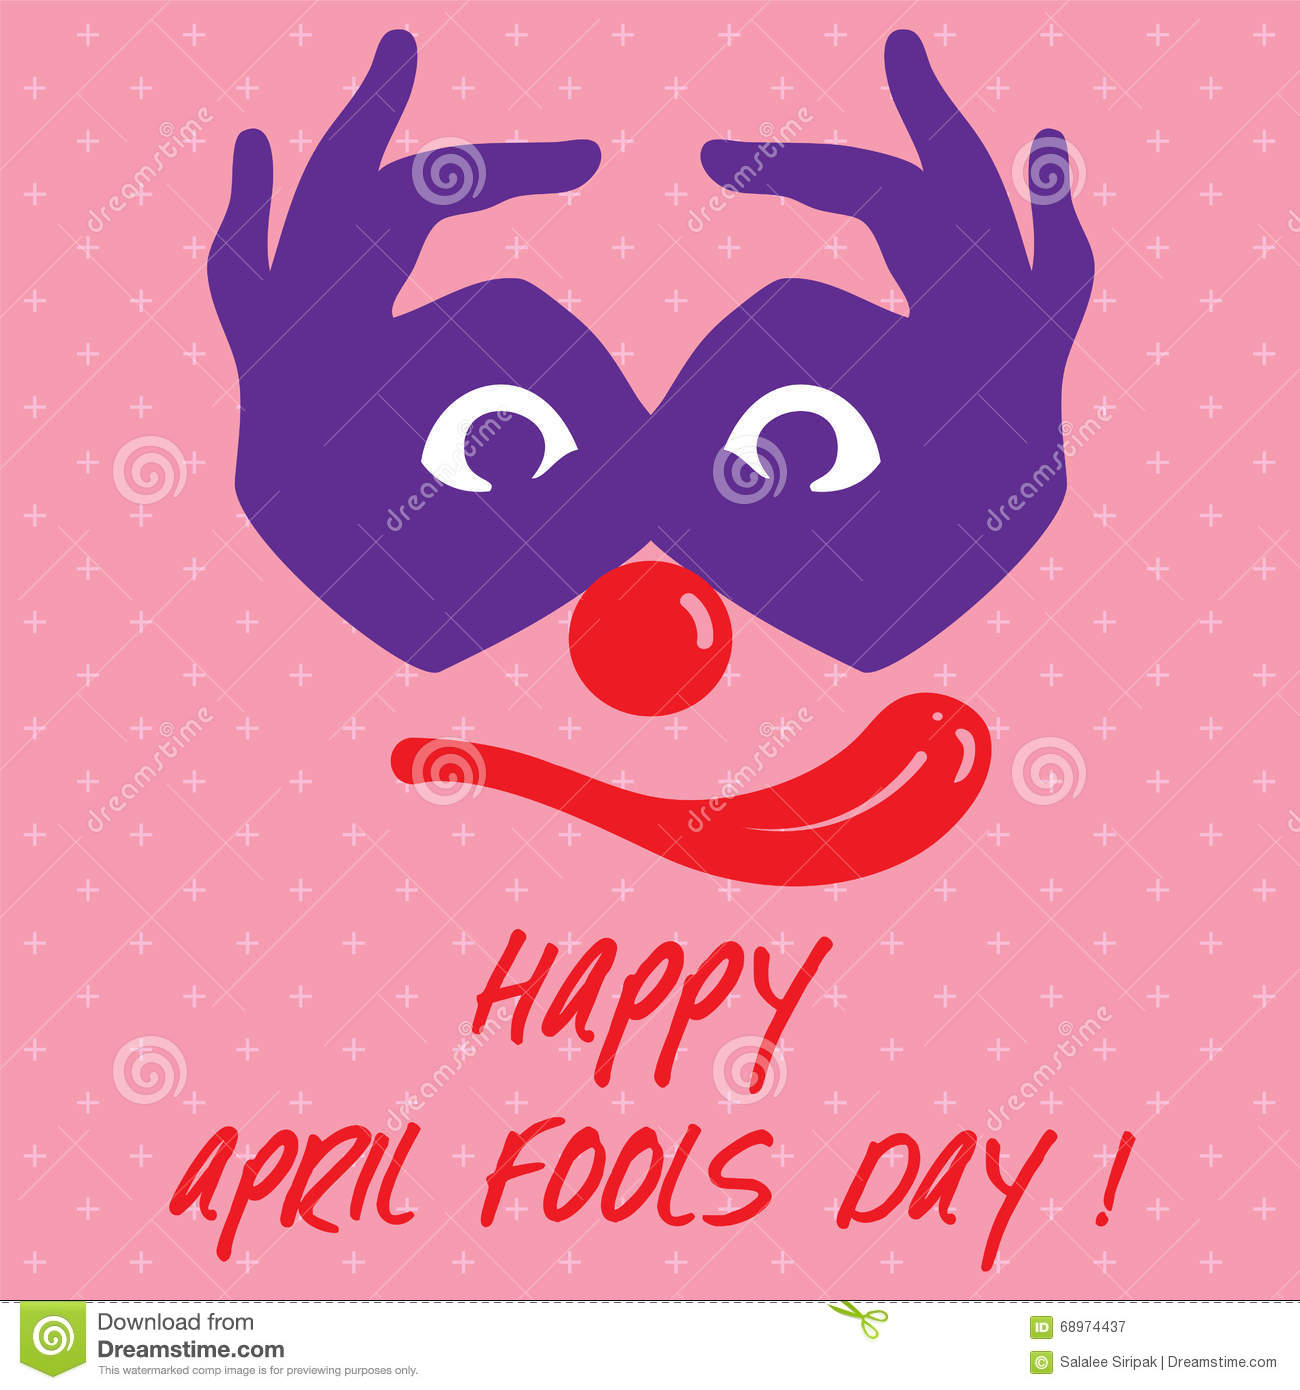 April Fools Day Text And Funny Face Joker Vector Illustration Stock